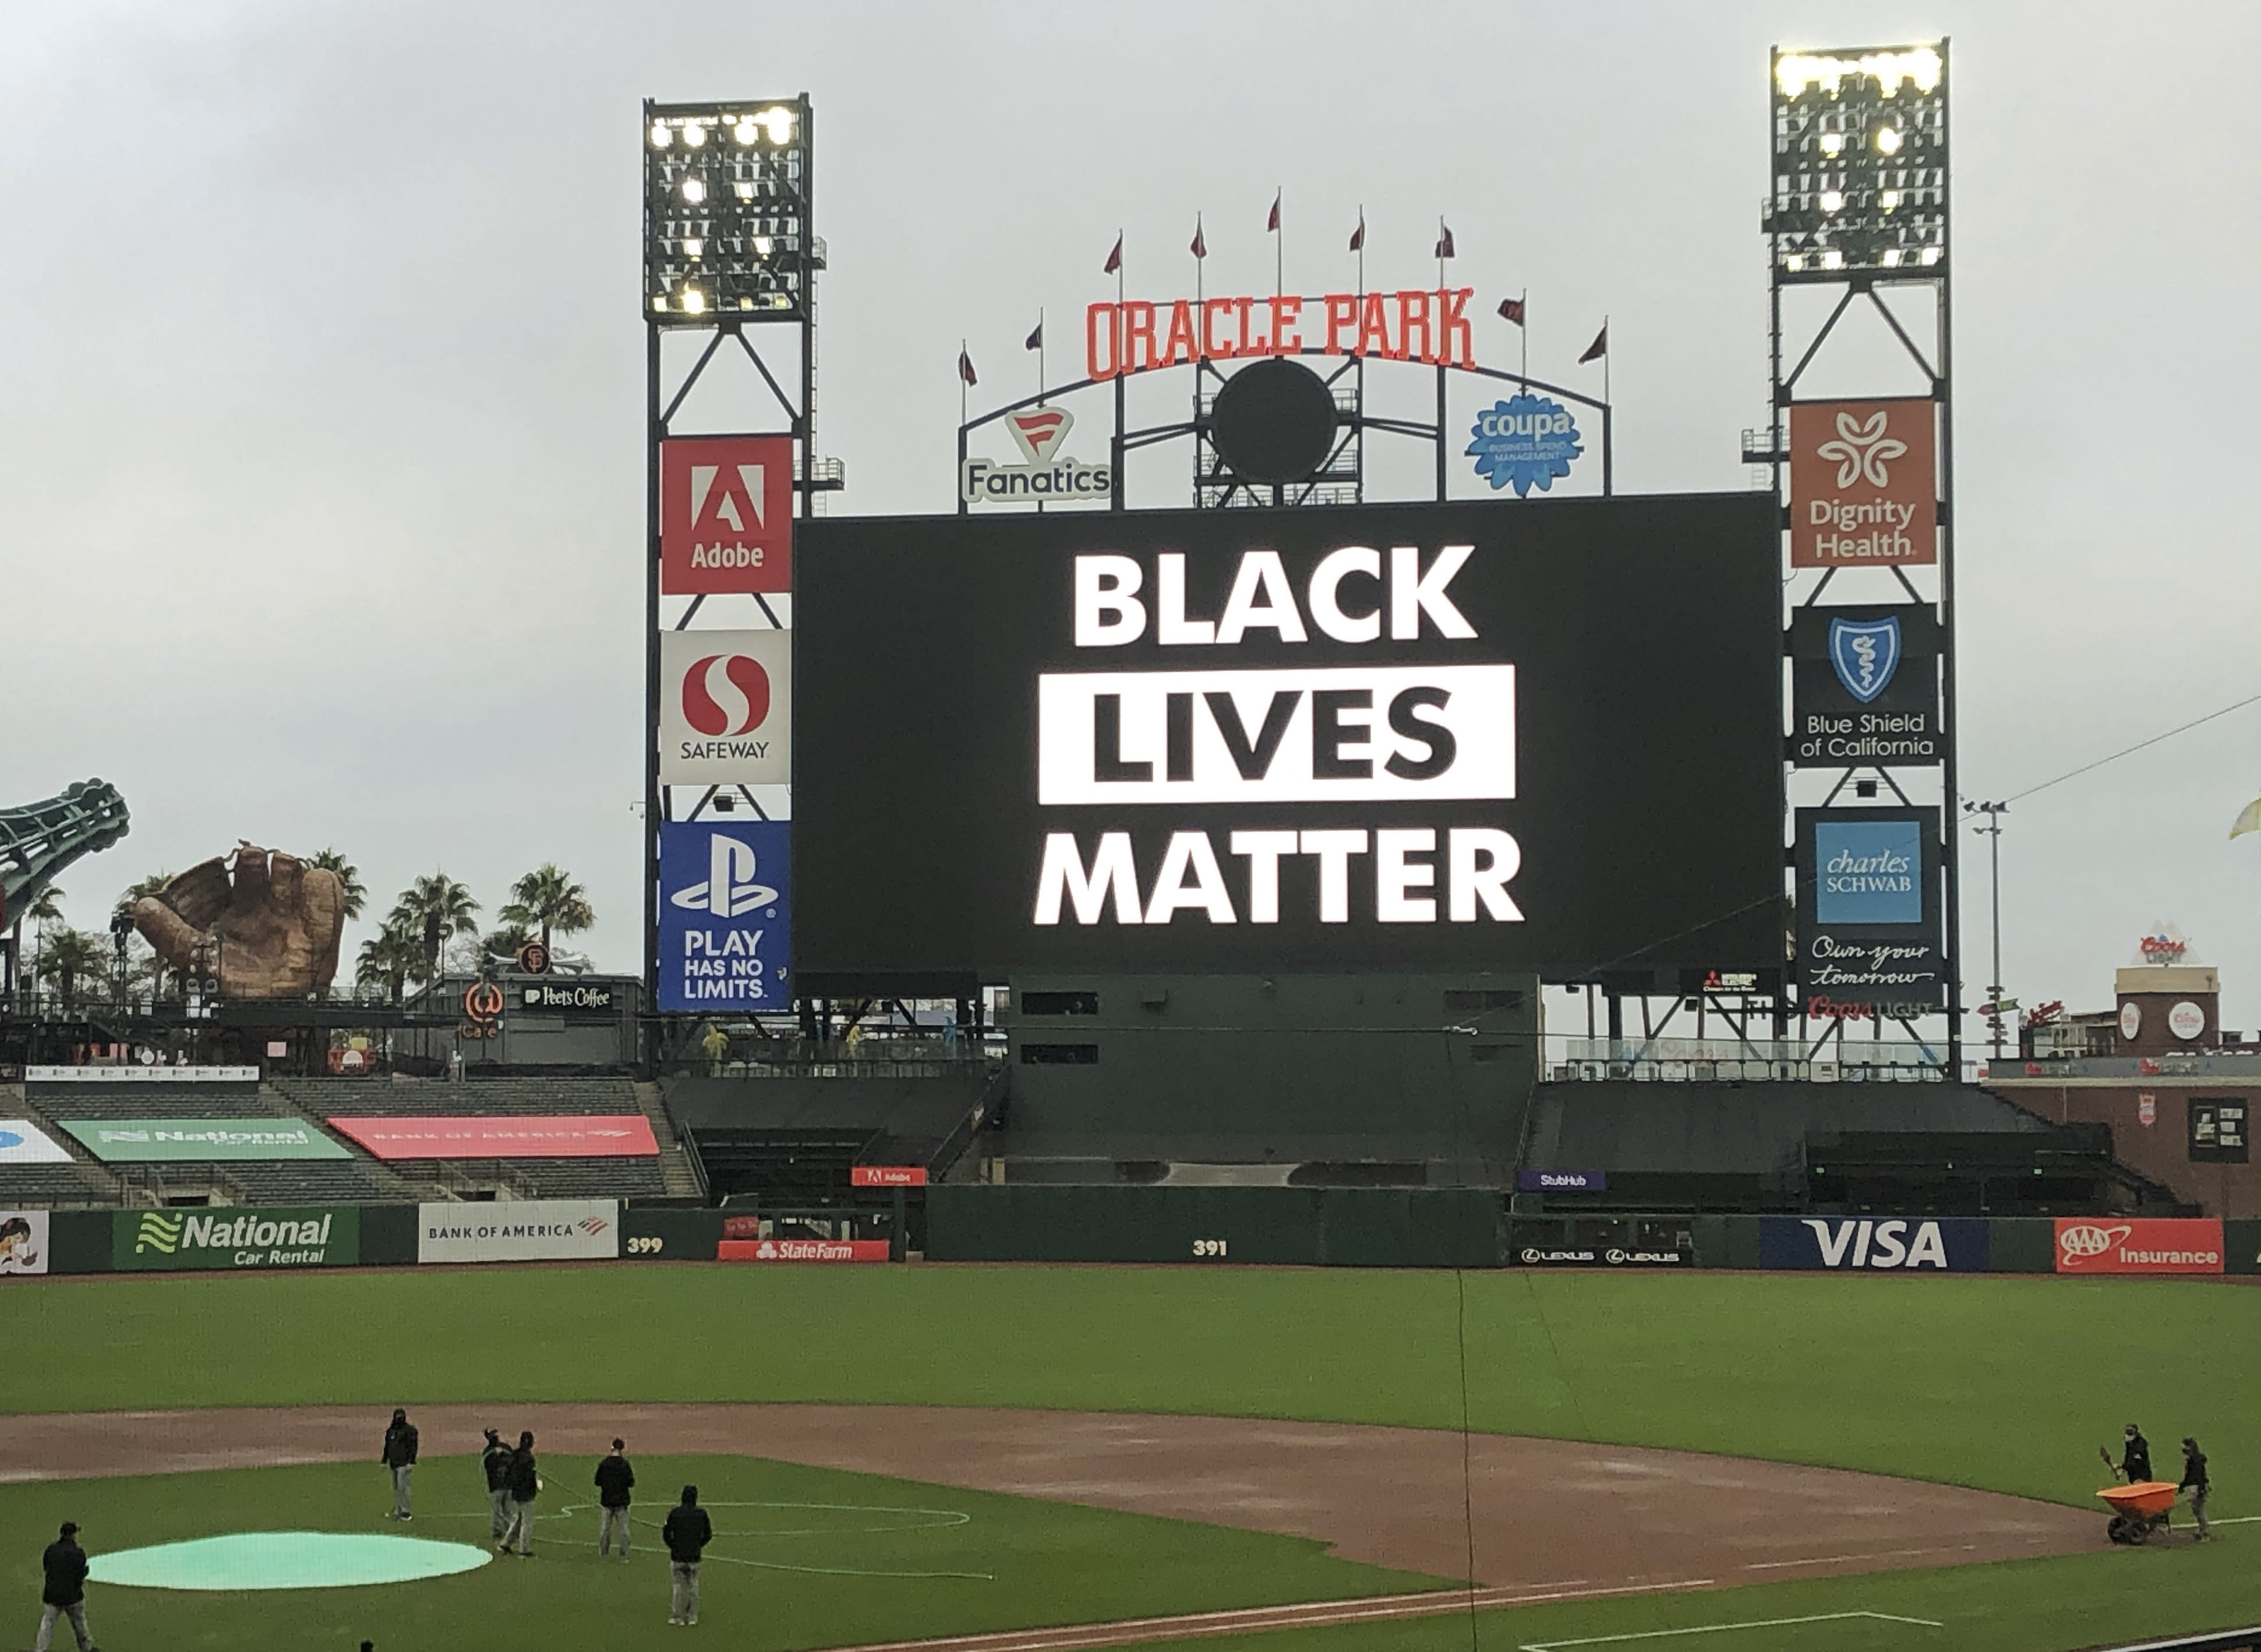 Groundskeepers work on the field as the scoreboard at Oracle Park reads Black Lives Matter at scheduled game time after a baseball game between the Los Angeles Dodgers and the San Francisco Giants was postponed on Wednesday, Aug. 26, 2020, in San Francisco. (AP Photo/Ben Margot)